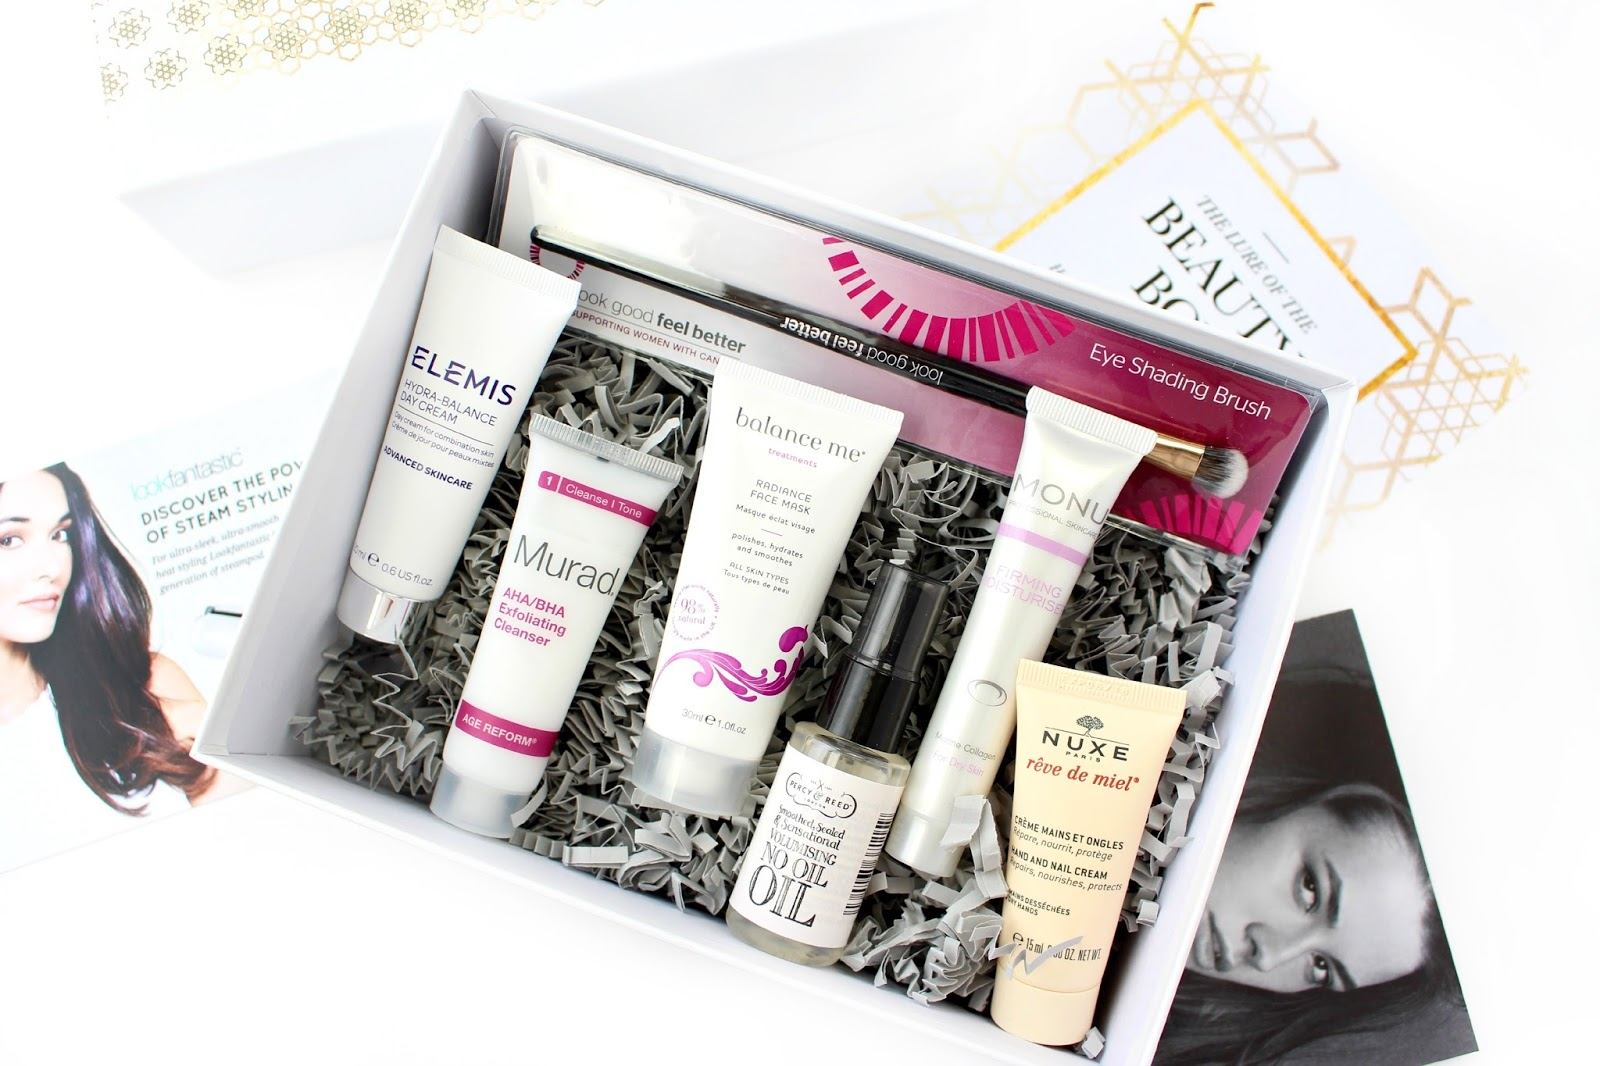 The Look Fantastic Beauty Box